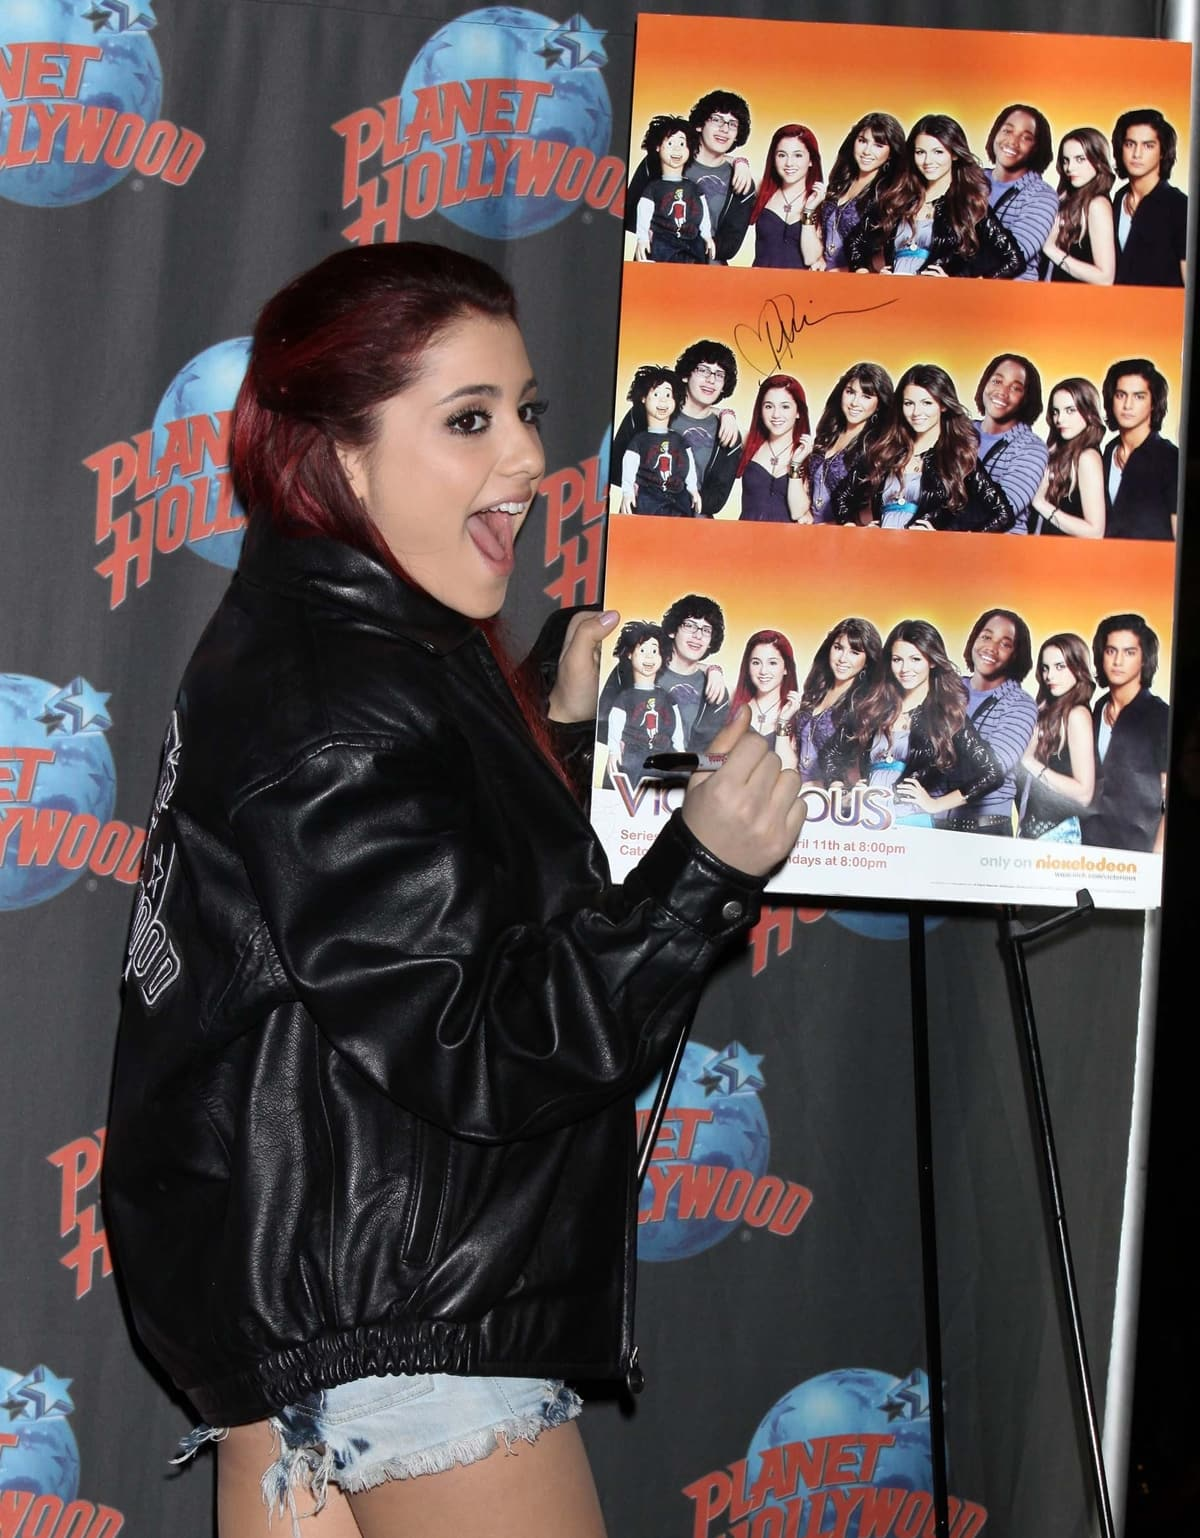 Ariana Grande became famous for her role as Cat Valentine in the Nickelodeon television series Victorious